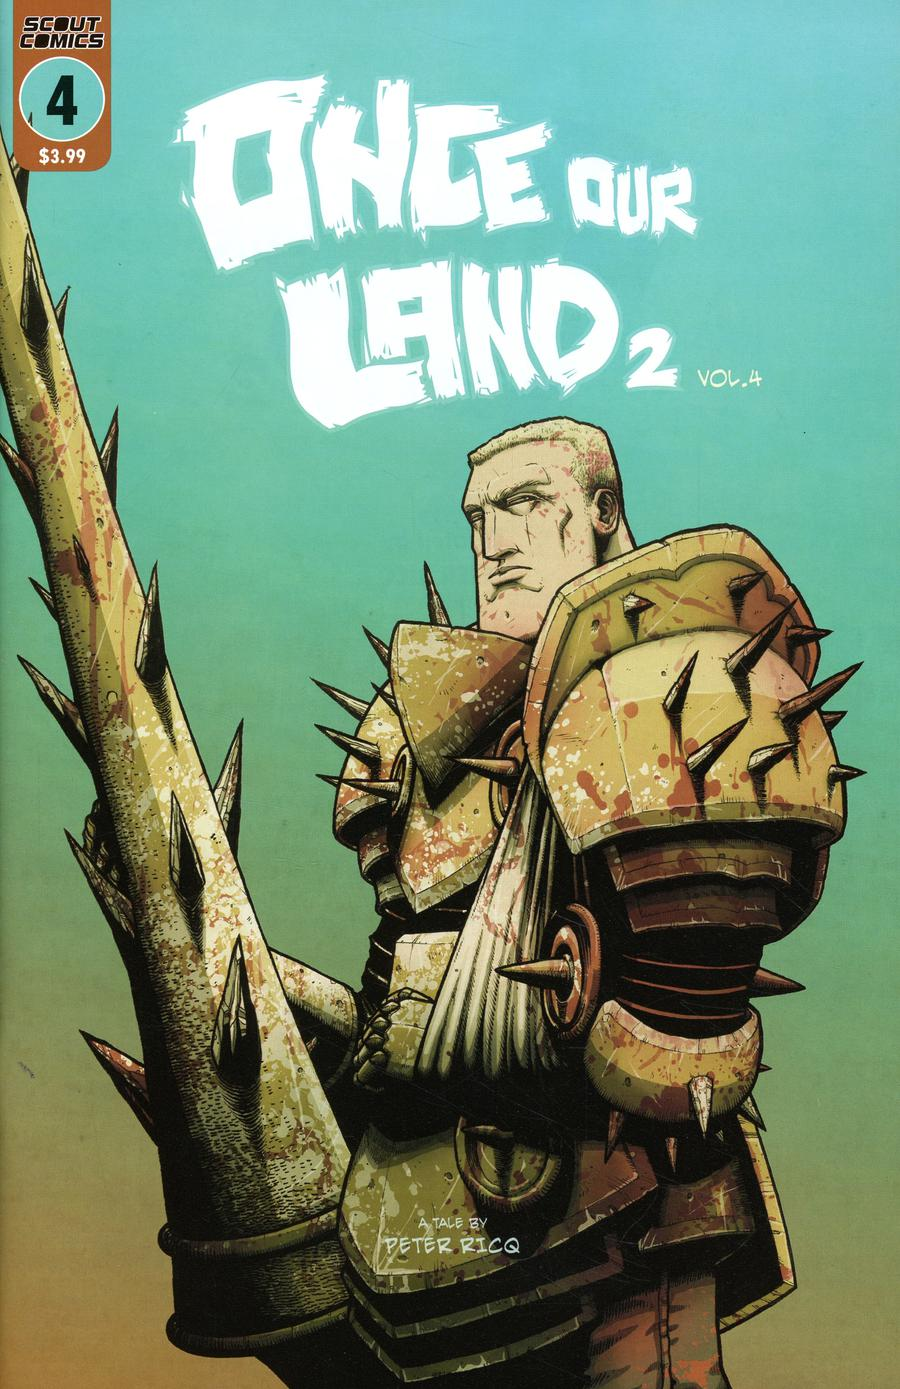 Once Our Land Book 2 #4